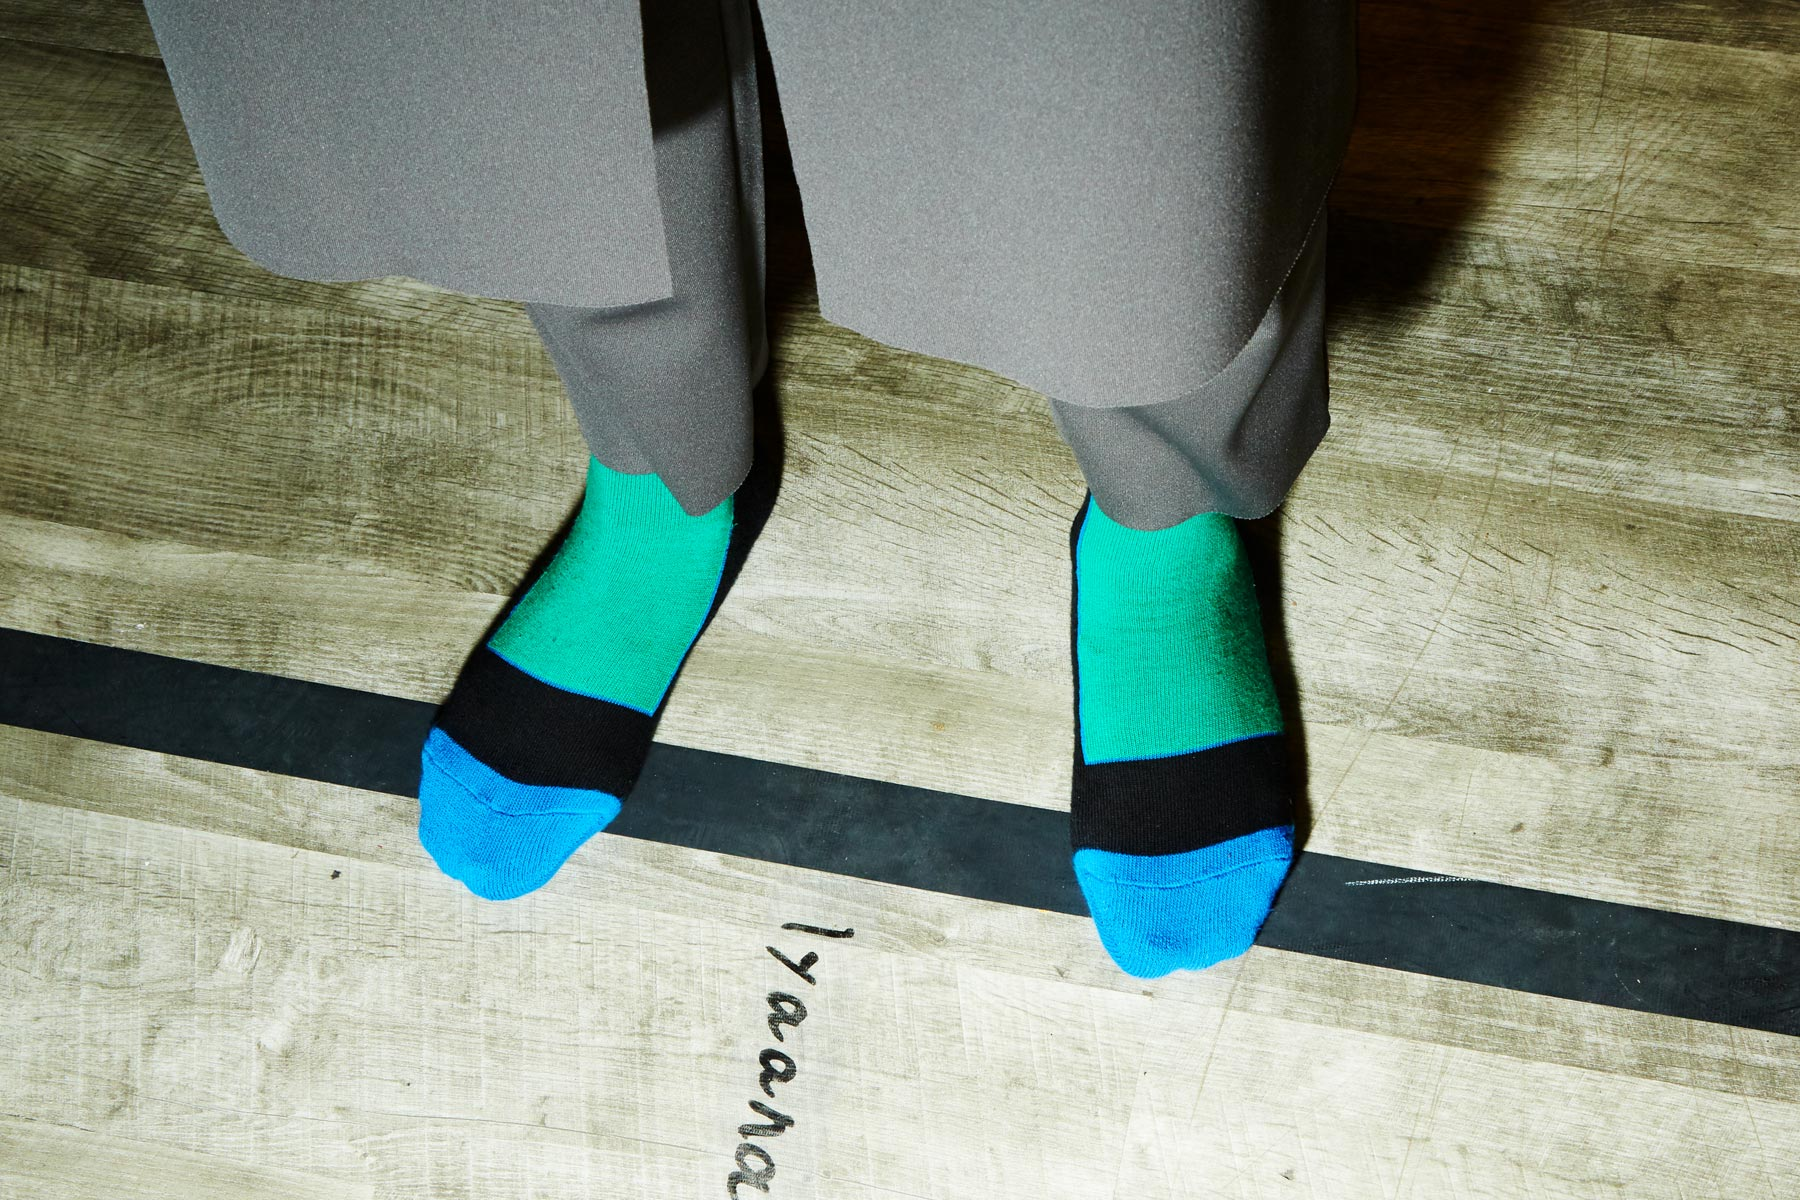 Color blocked men's socks backstage at N. Hoolywood Spring 2019 show. Photography by Alexander Thompson for Ponyboy magazine.